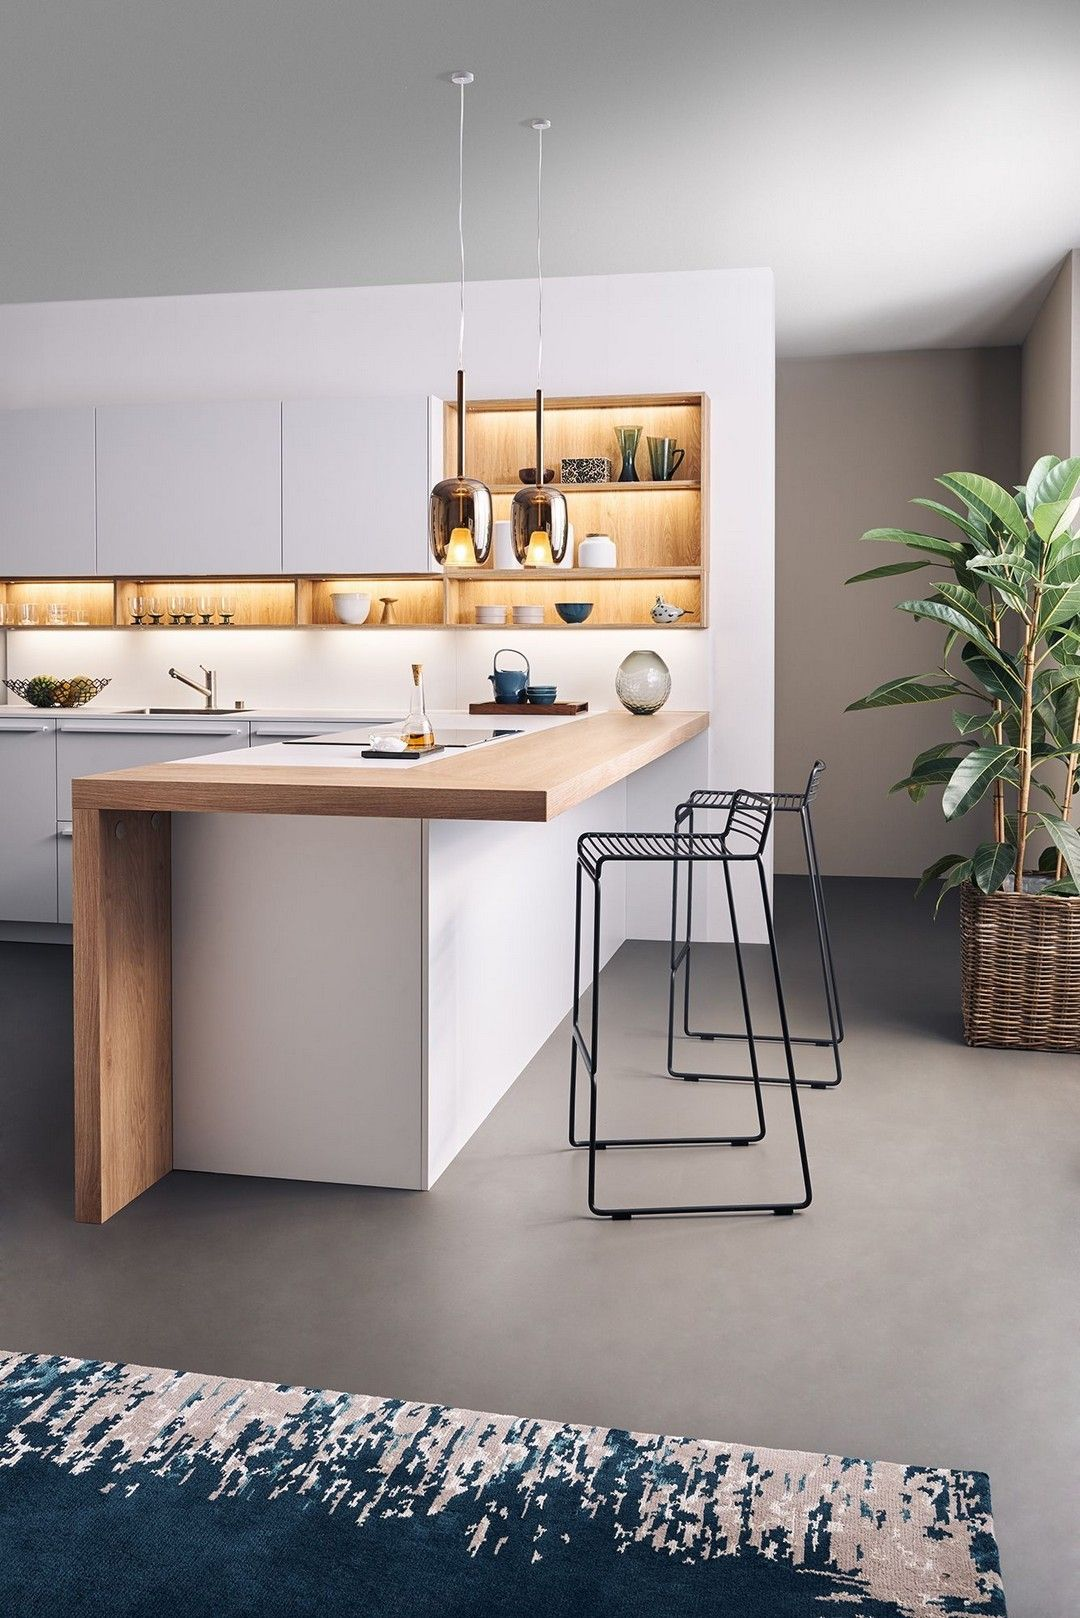 Details  design ideas to borrow from modern kitchens no matter what  your style in kitchen pinterest plywood and also rh